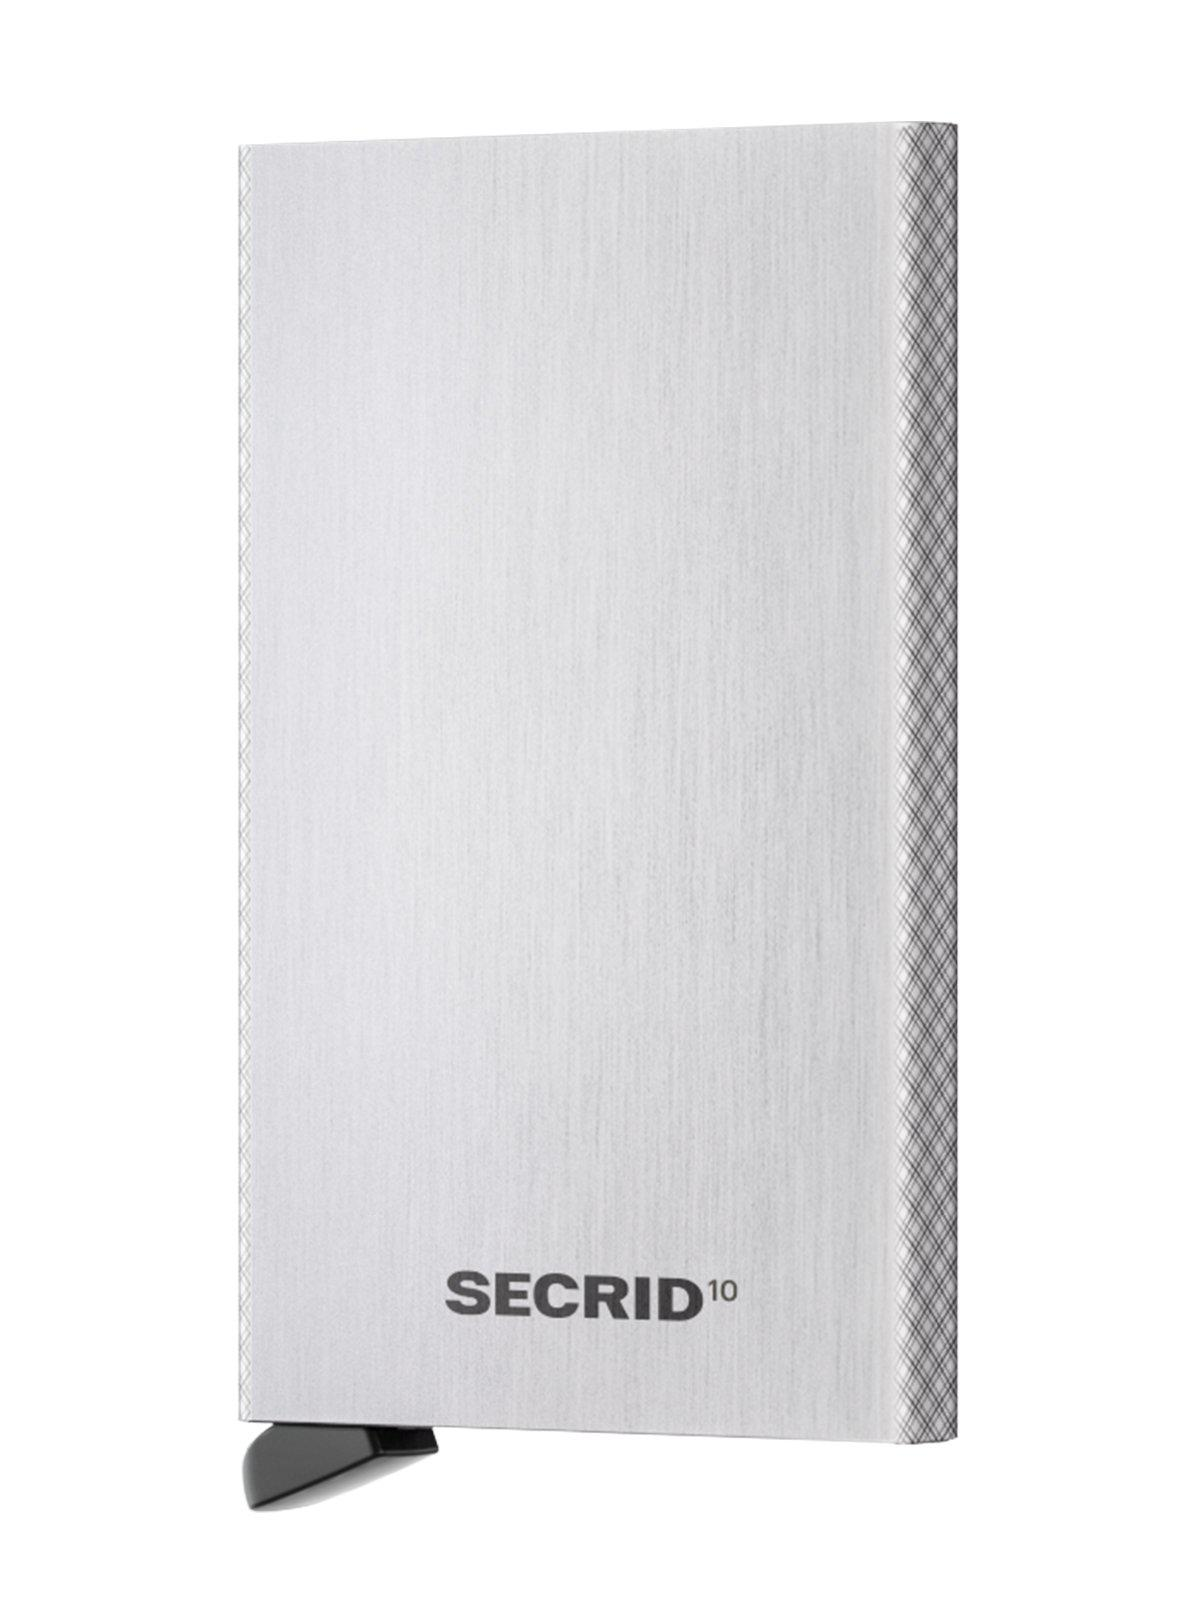 Secrid Cardprotector 10 Limited